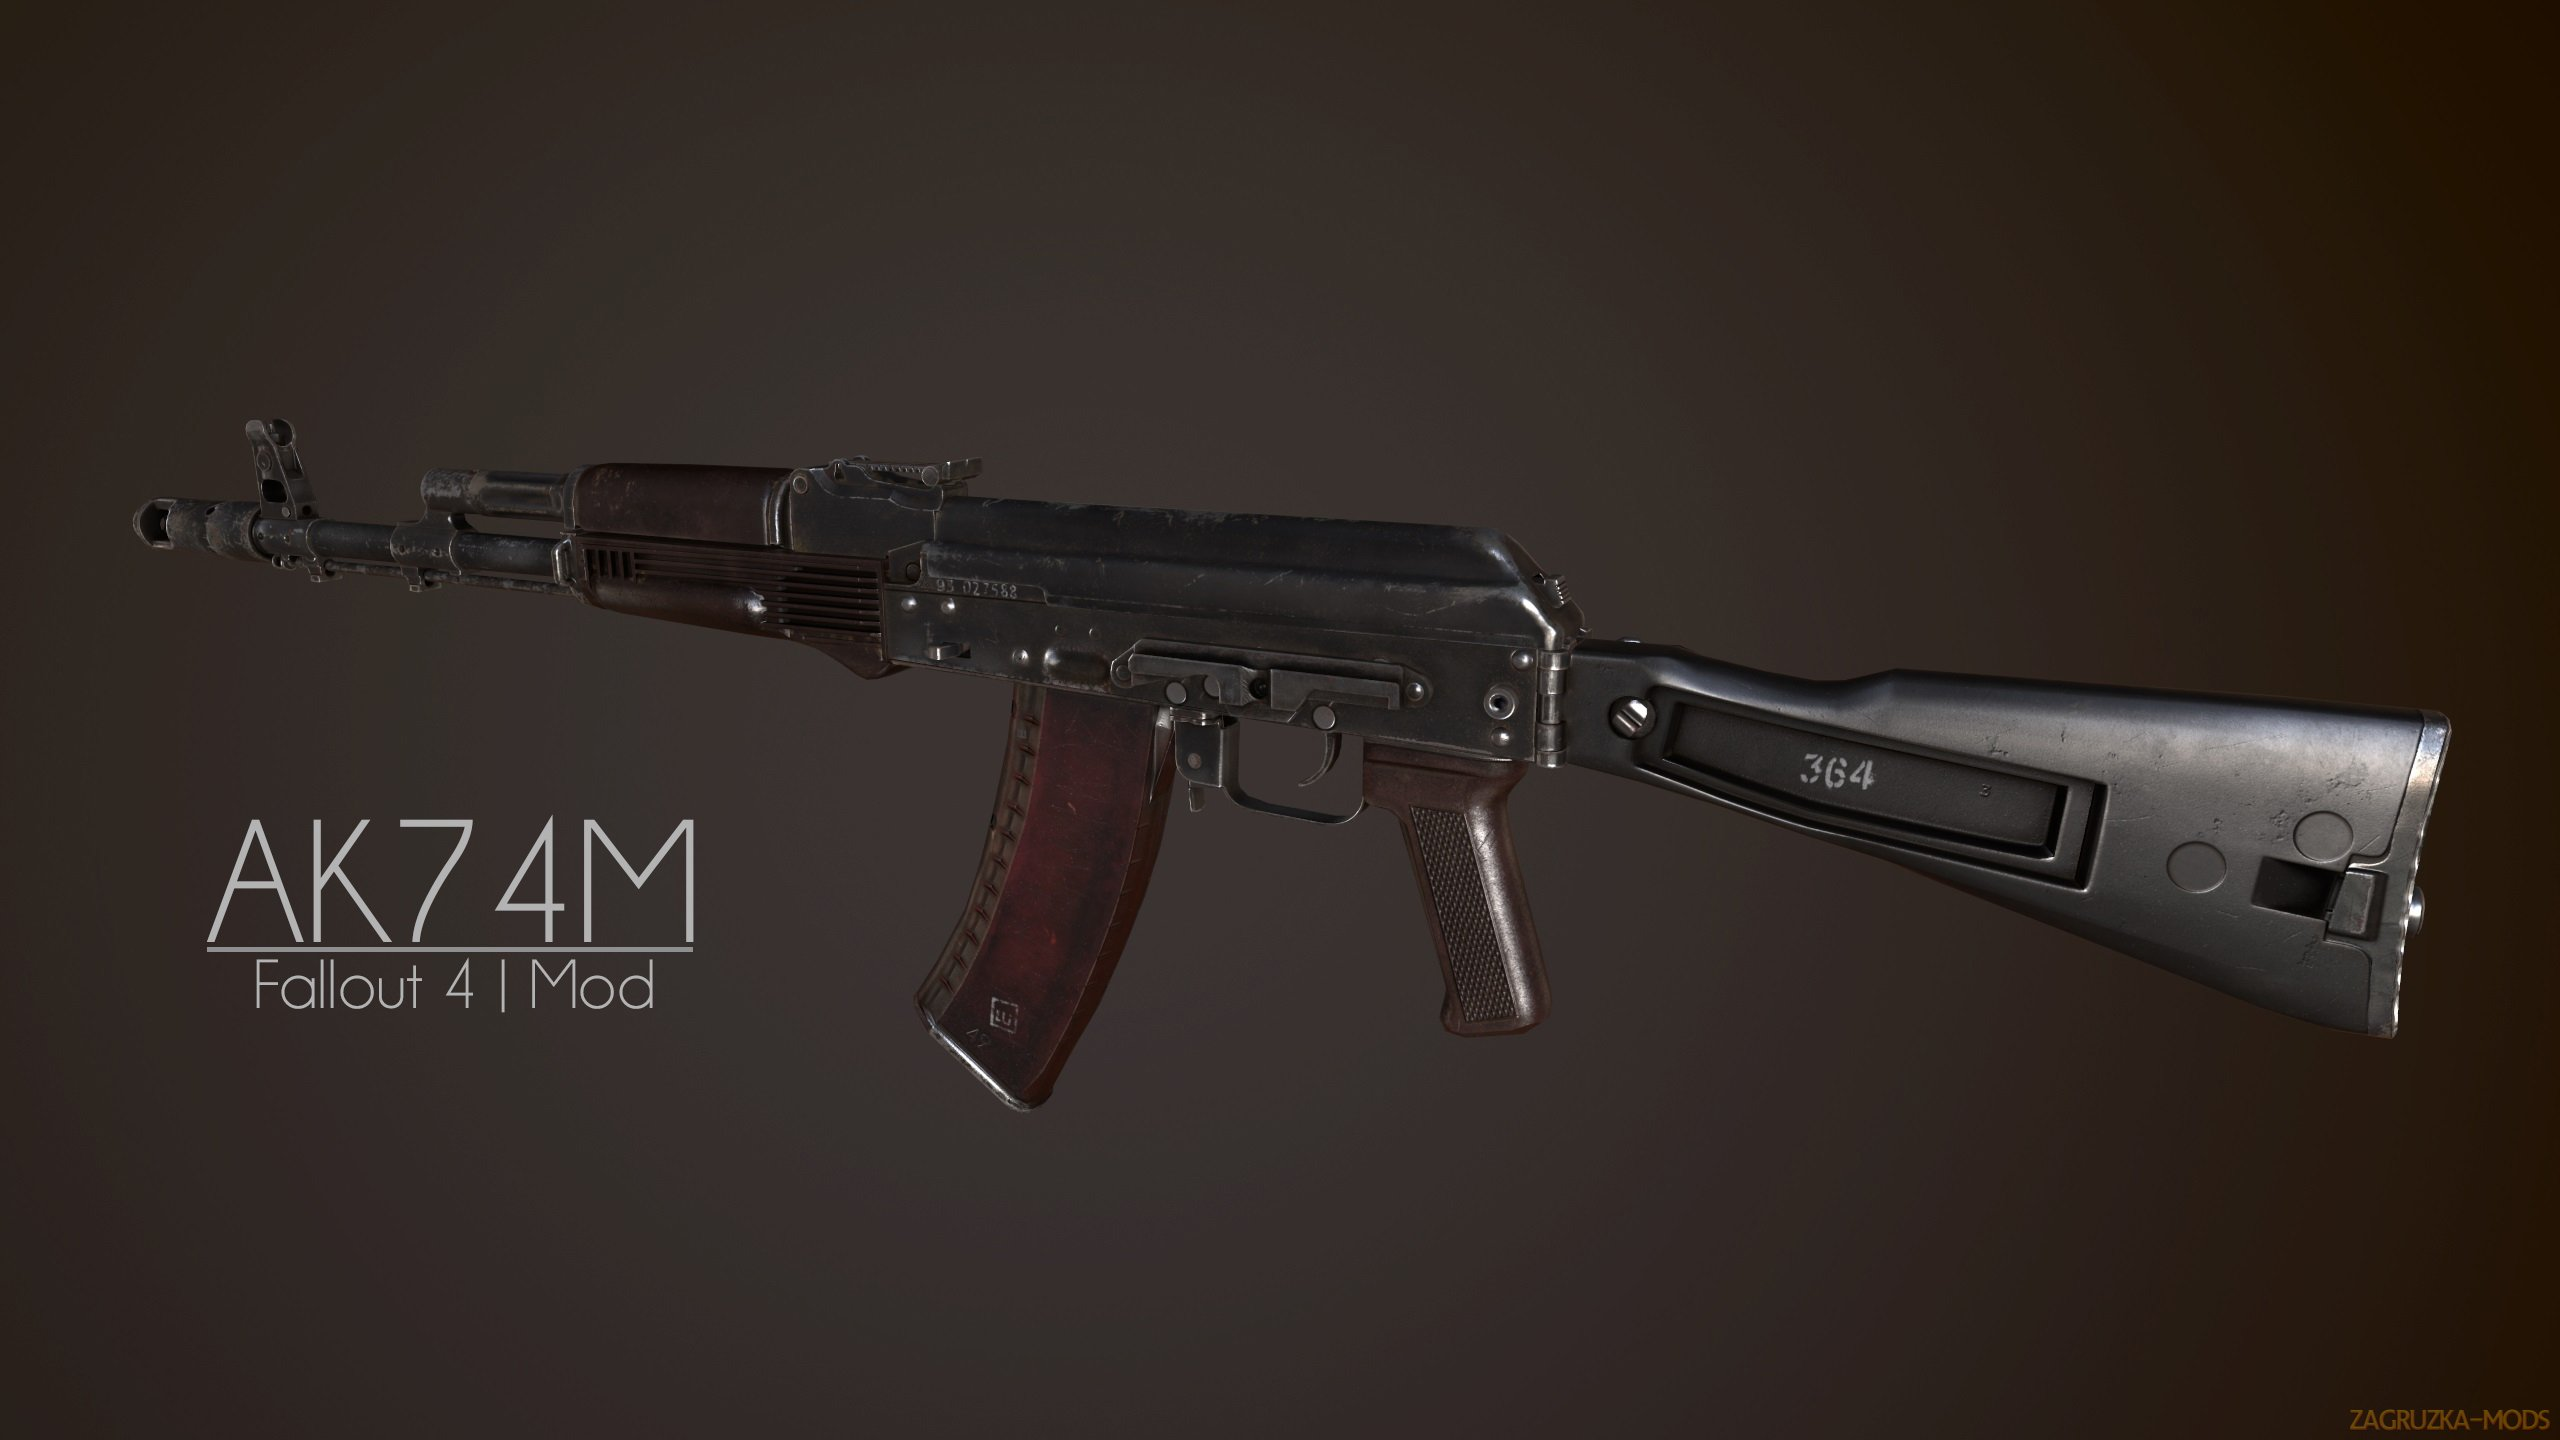 AK74M - Assault Rifle v1.0.1 for Fallout 4